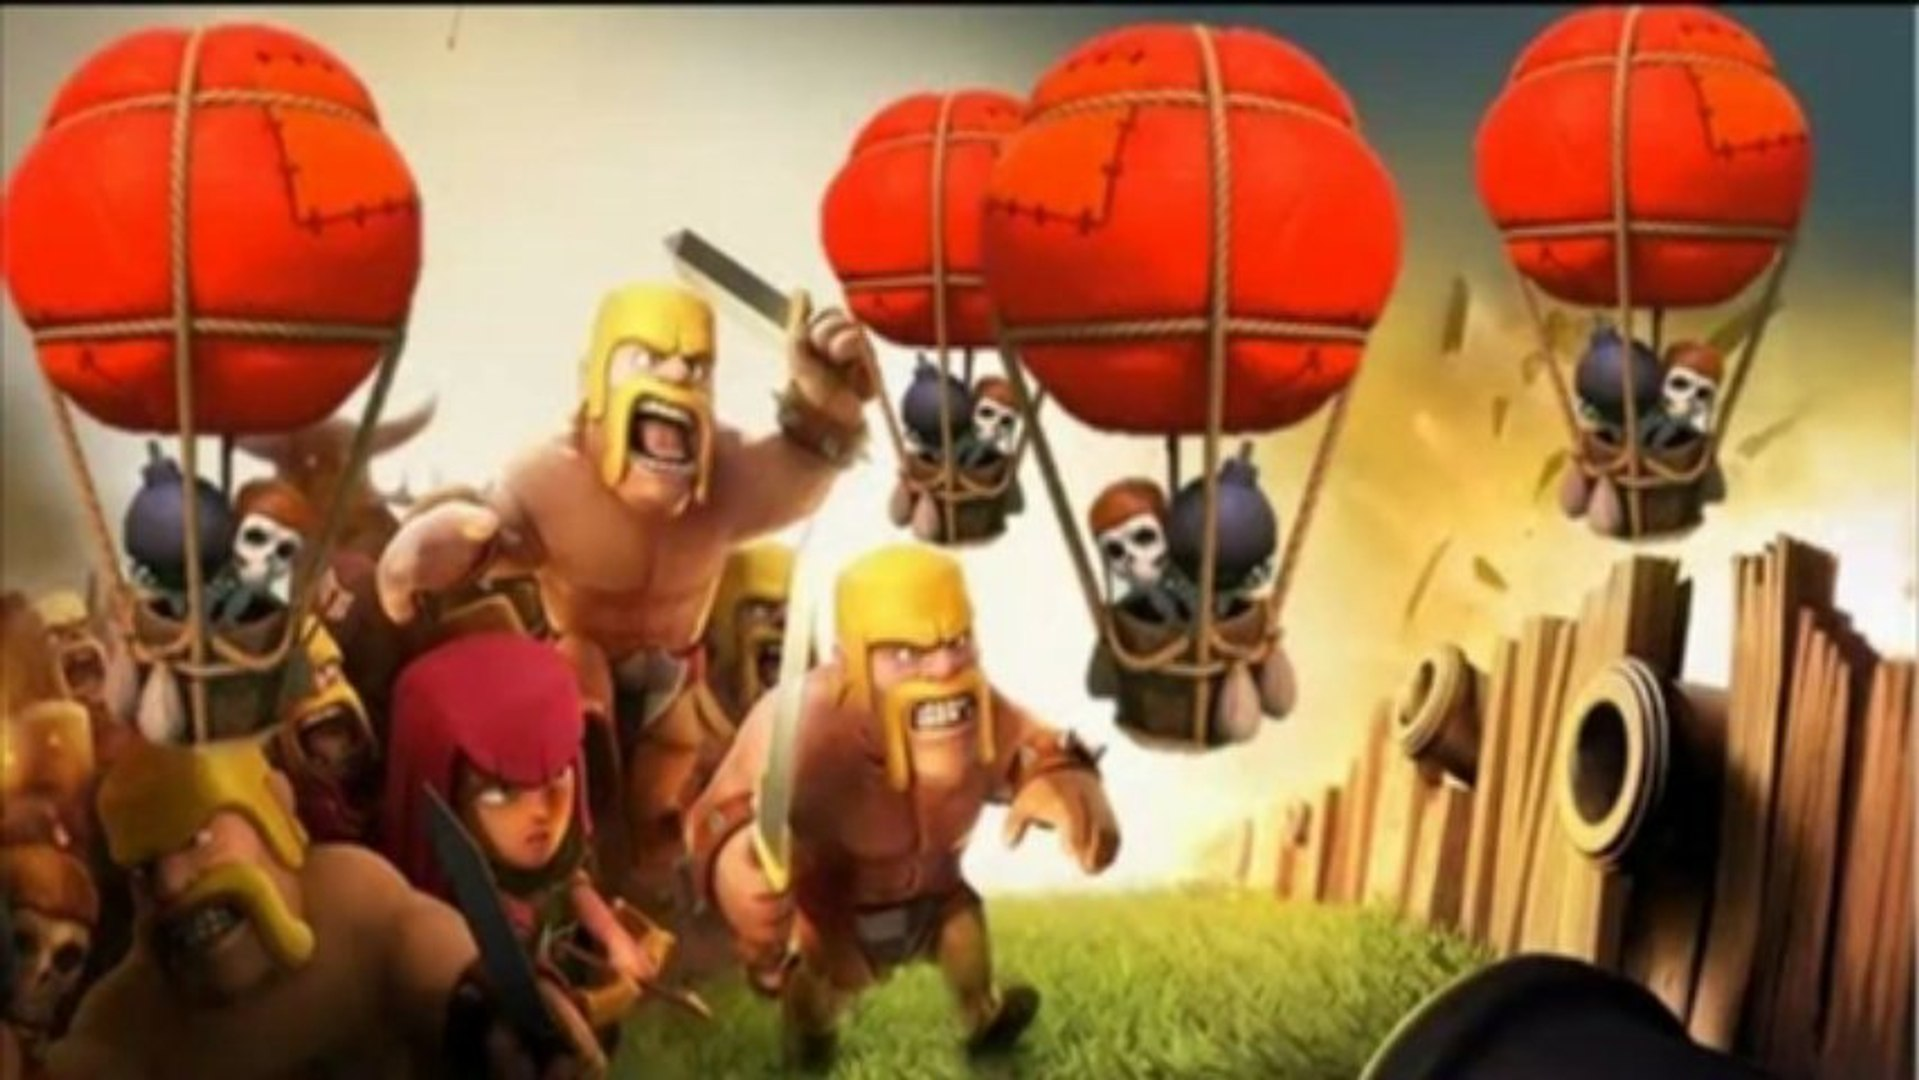 How to Use CLASH OF CLANS Cheat No Jailbreak [Unlimited Elixirs and Shield -CLASH OF CLANS Cheat]